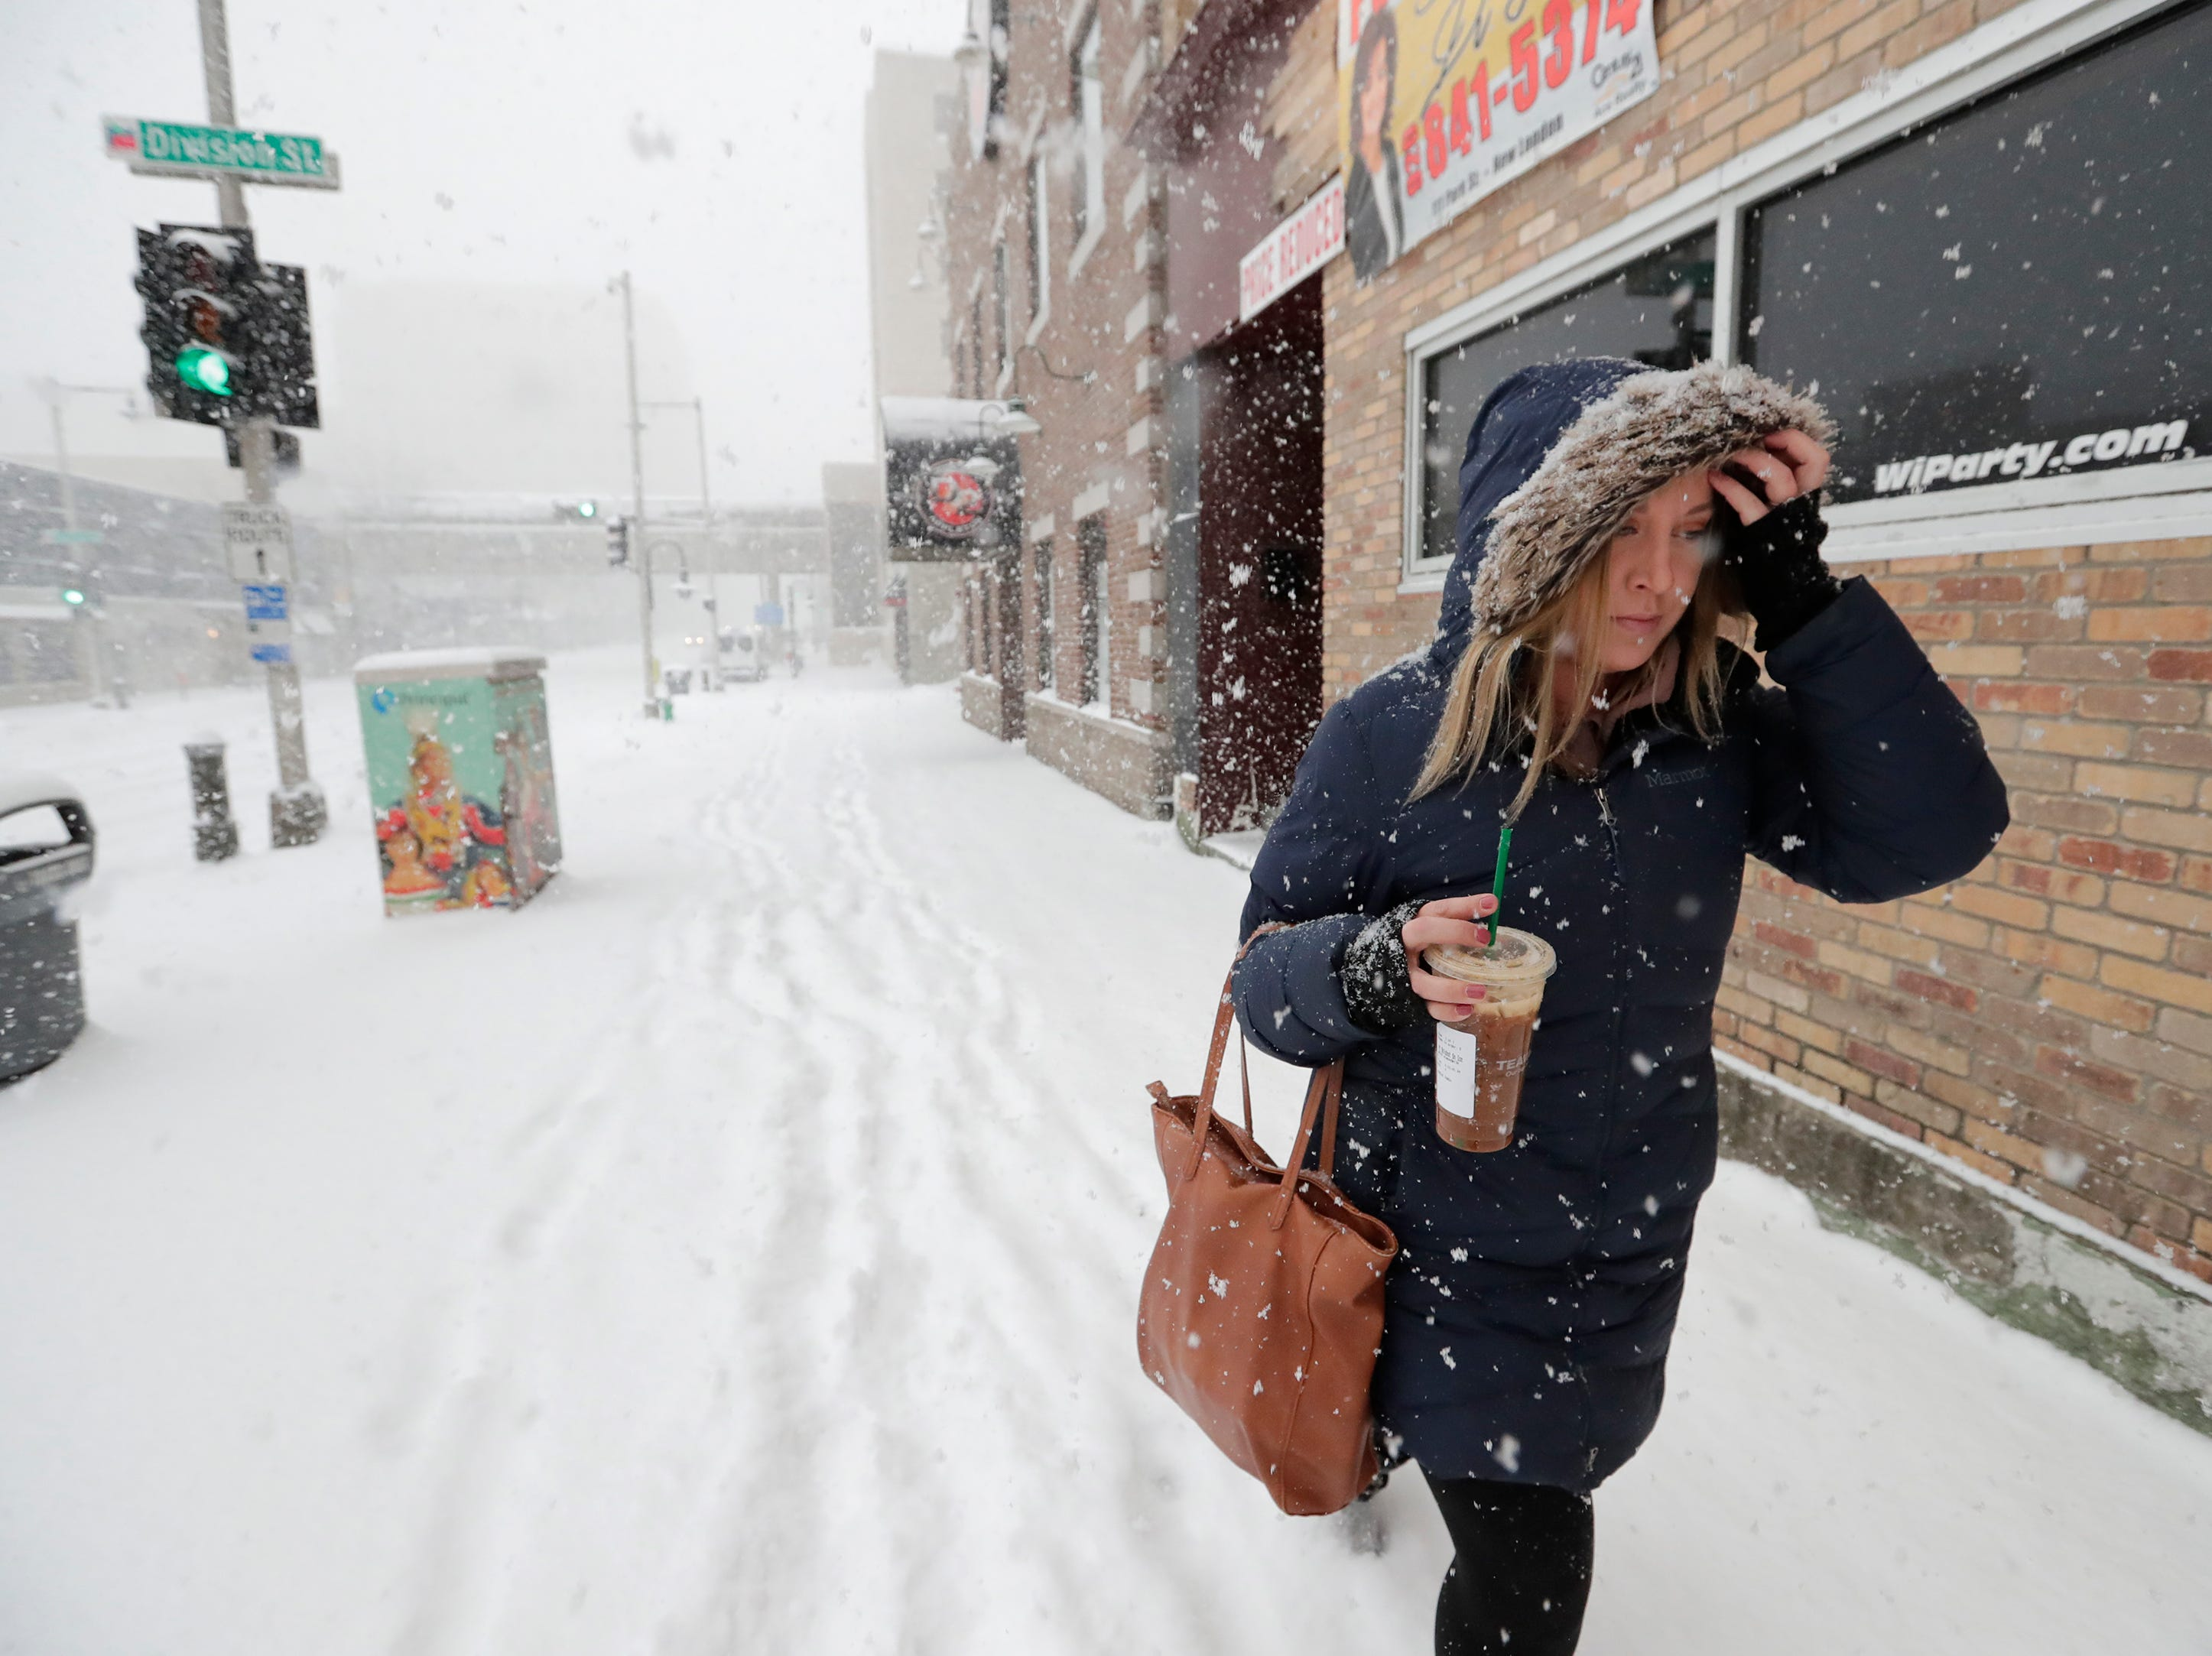 Jenna Gutbrod of Greenville braves the blowing wind and snow to head to work at Dealer Inspire during a snowstorm Wednesday, January 23, 2019, in downtown Appleton, Wis. 